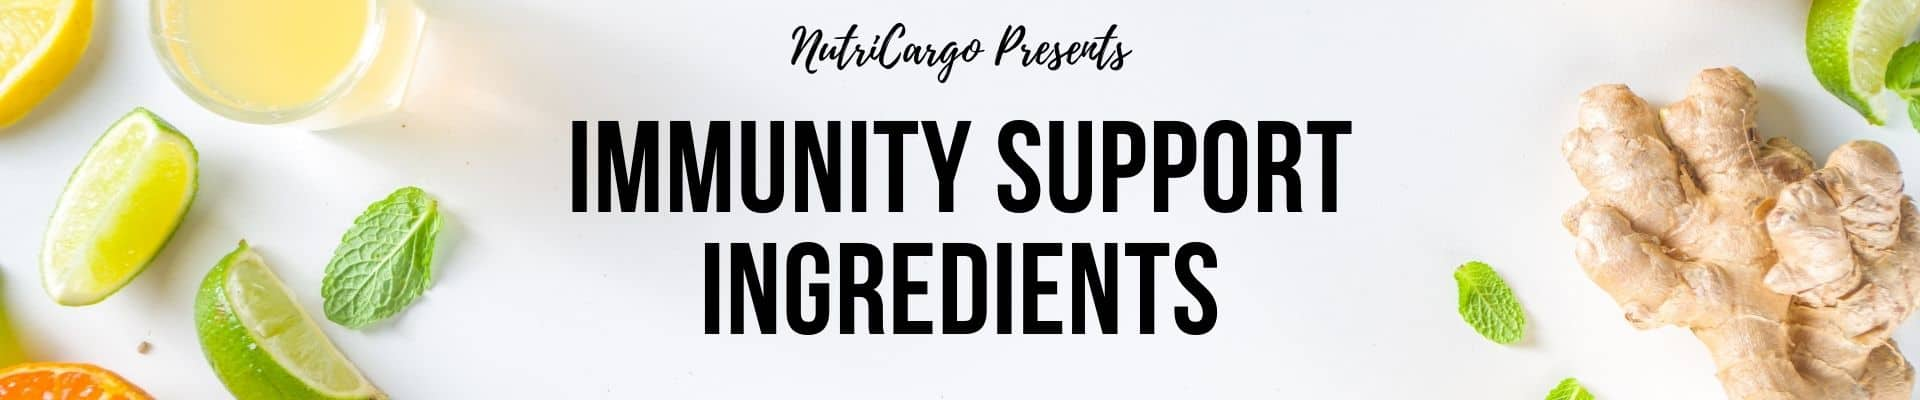 Ingredients Famous For Immunity Support From NutriCargo